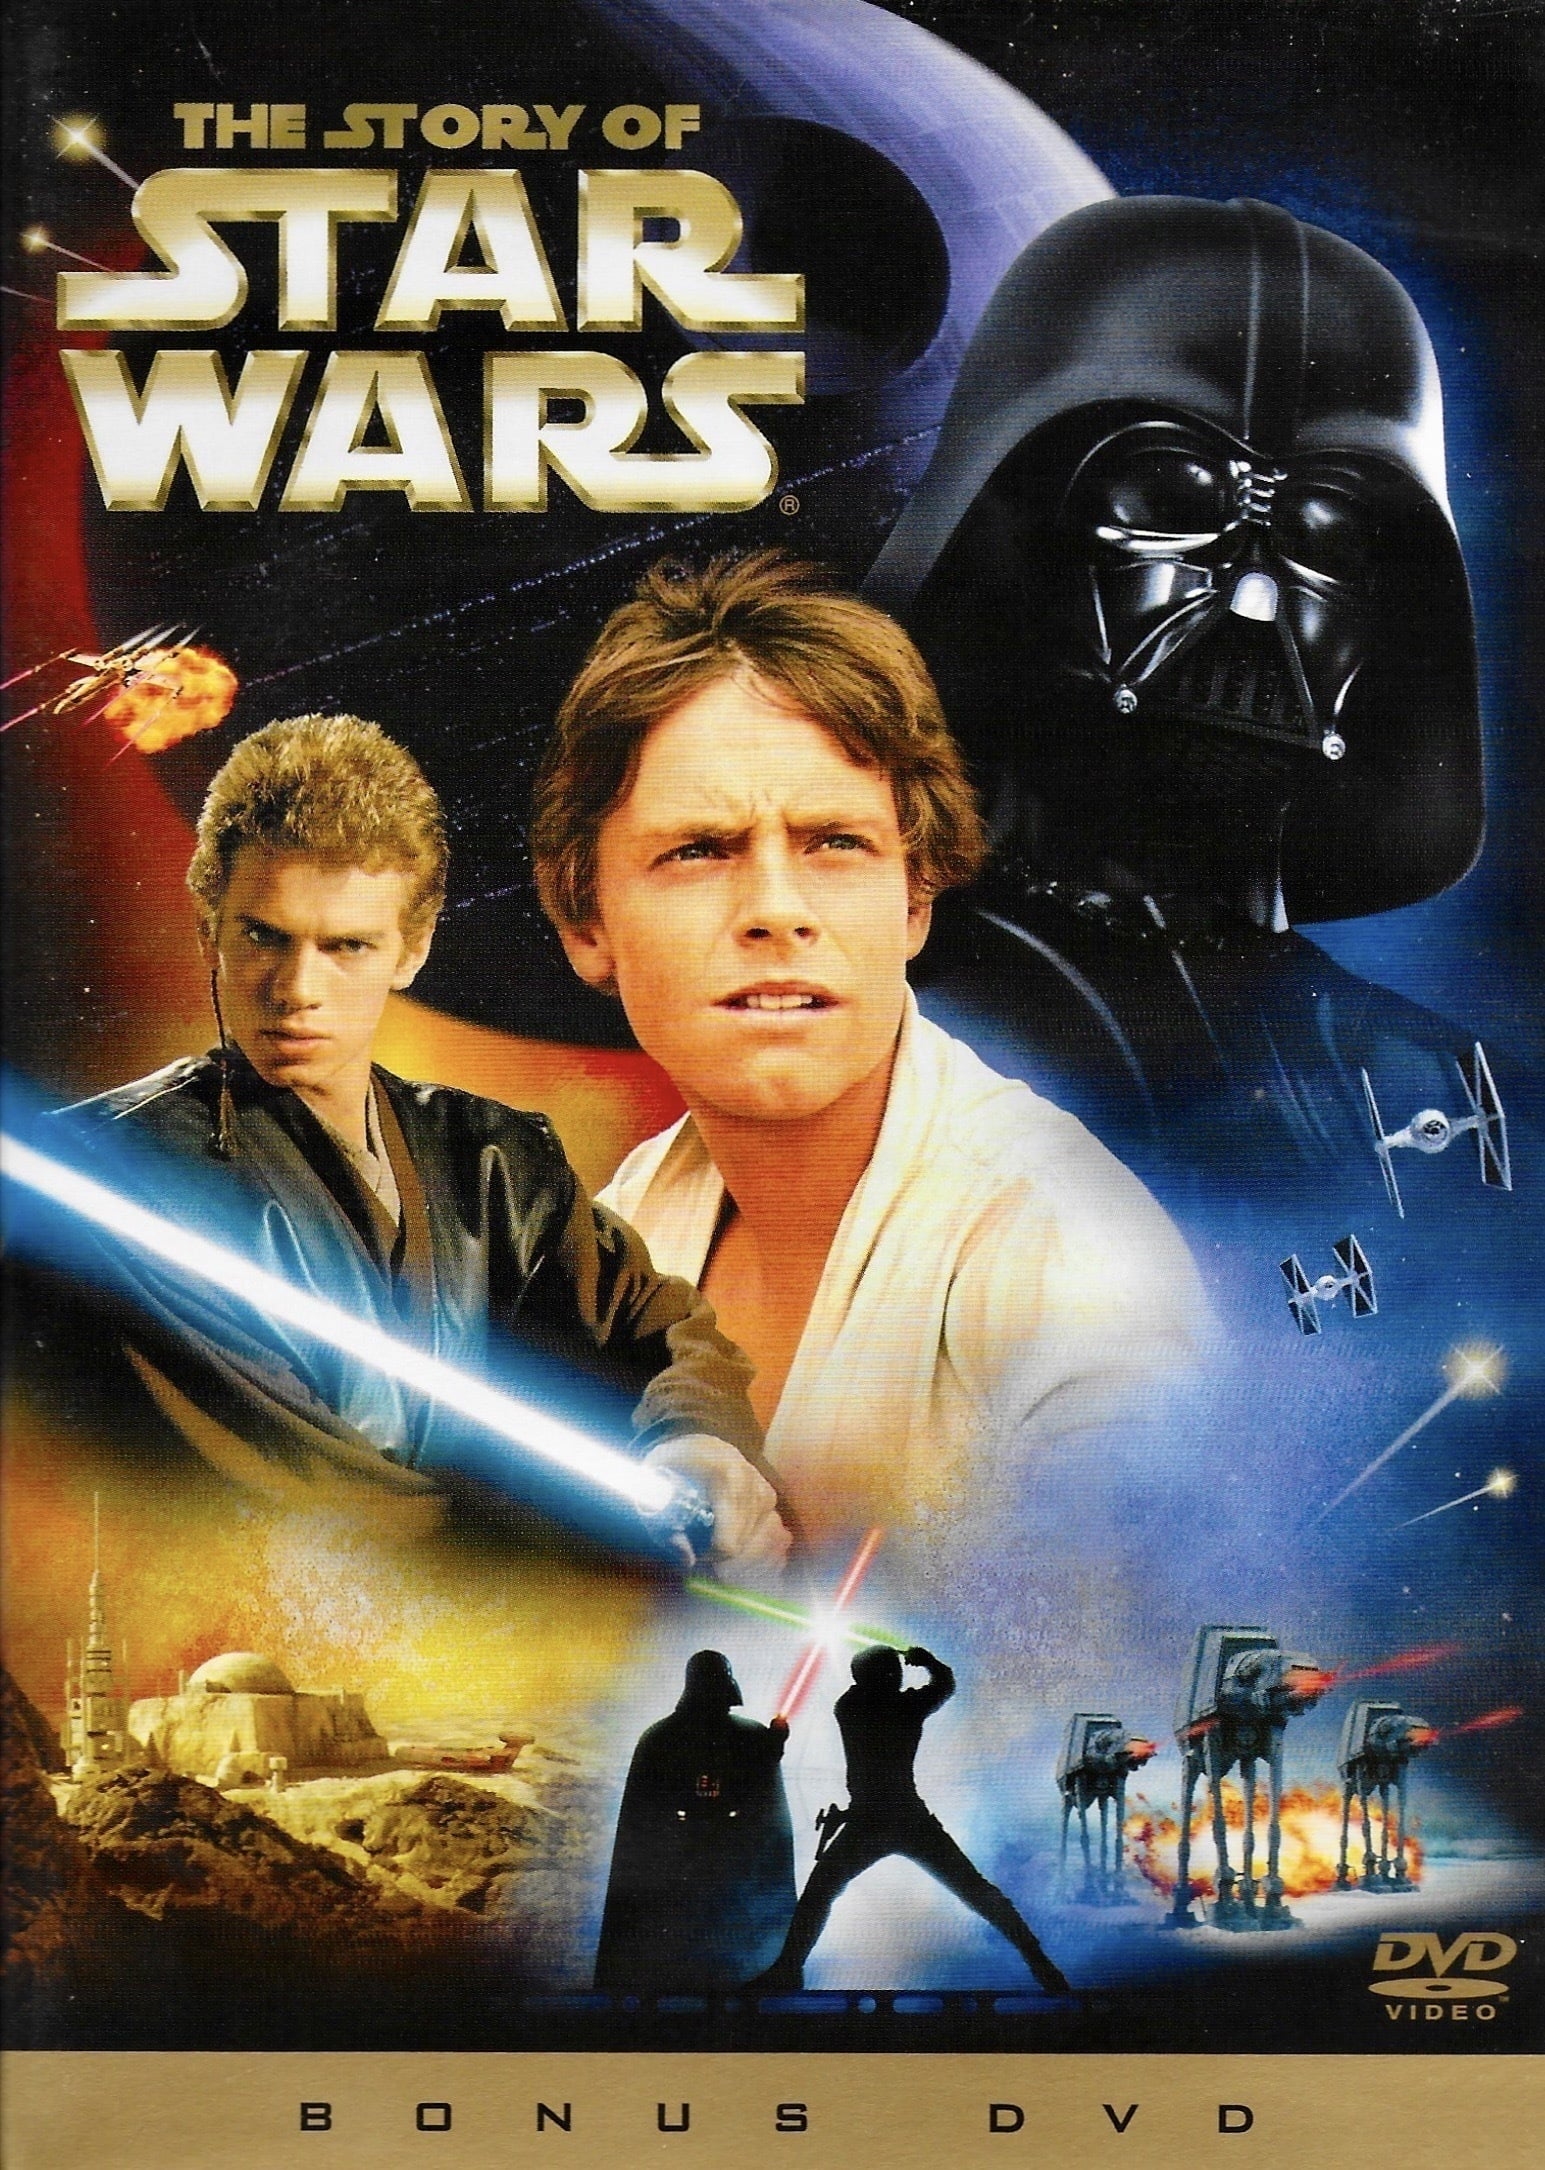 The Story of Star Wars (2004)